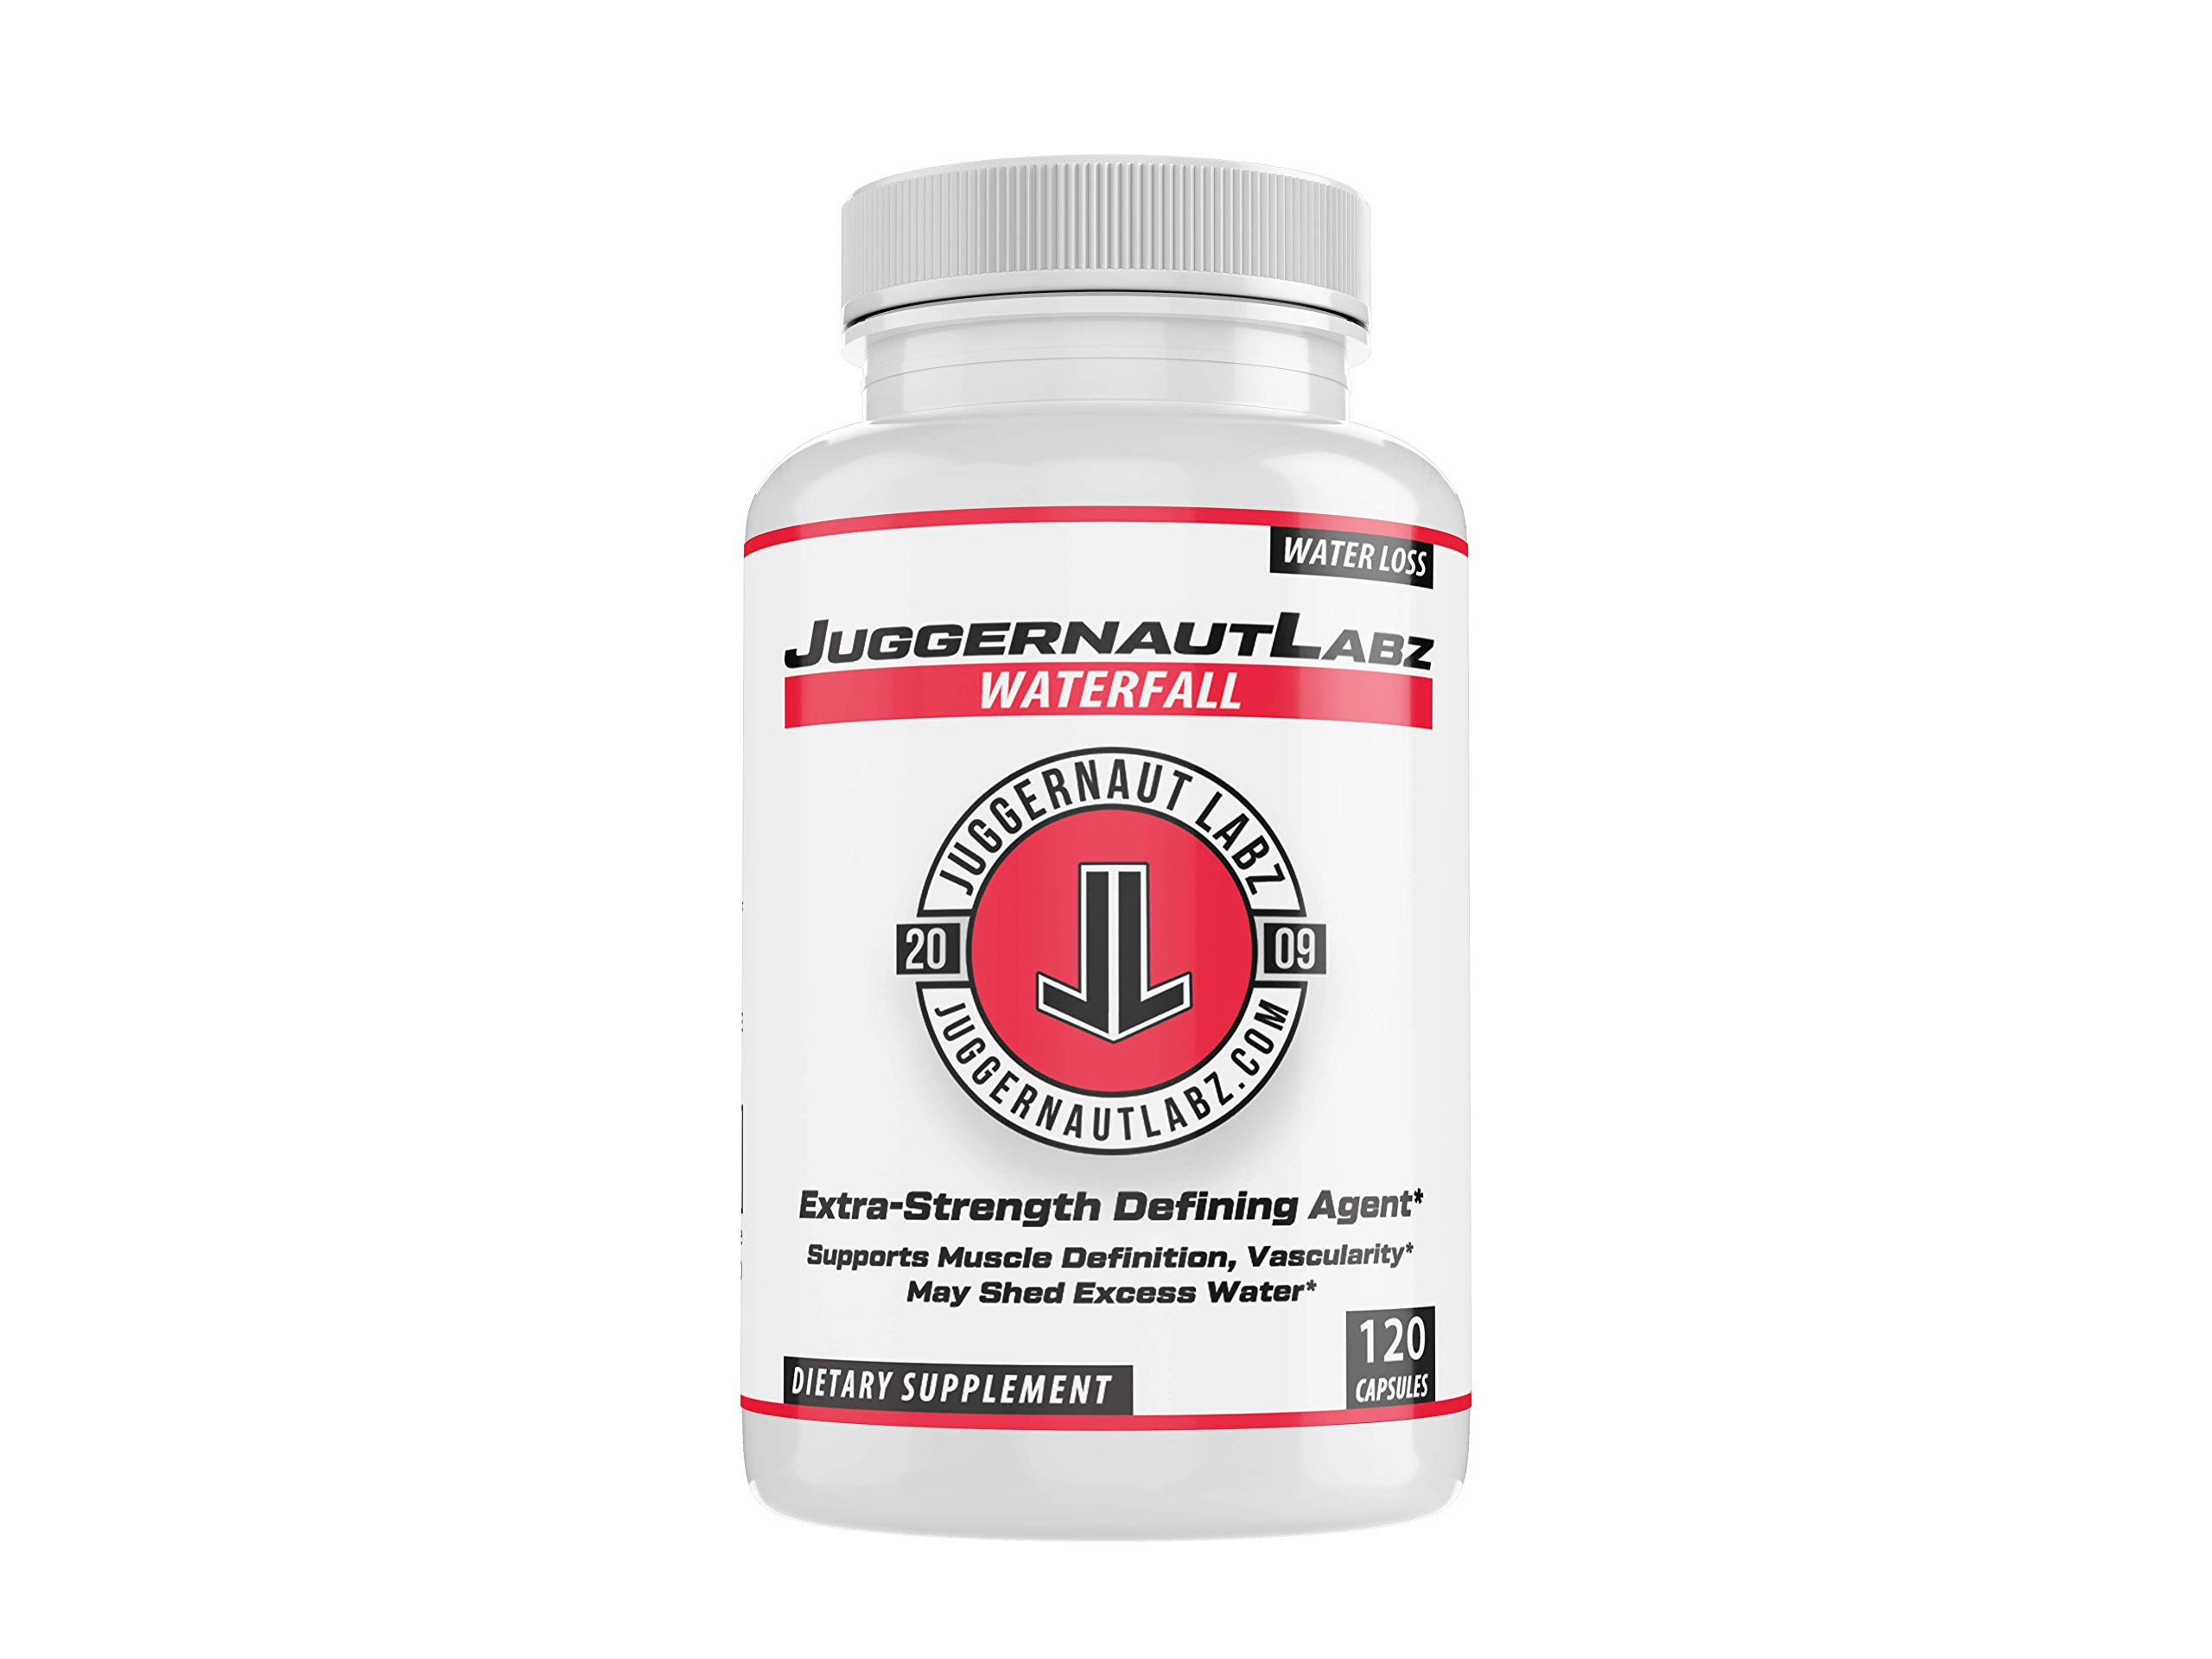 Juggernaut Labz WaterFALL - Extra Strength Defining Agent to Help Shed Water from Under Skin - Lose Weight & Lessen Cramping - Supports Vascularity & Muscle Definition